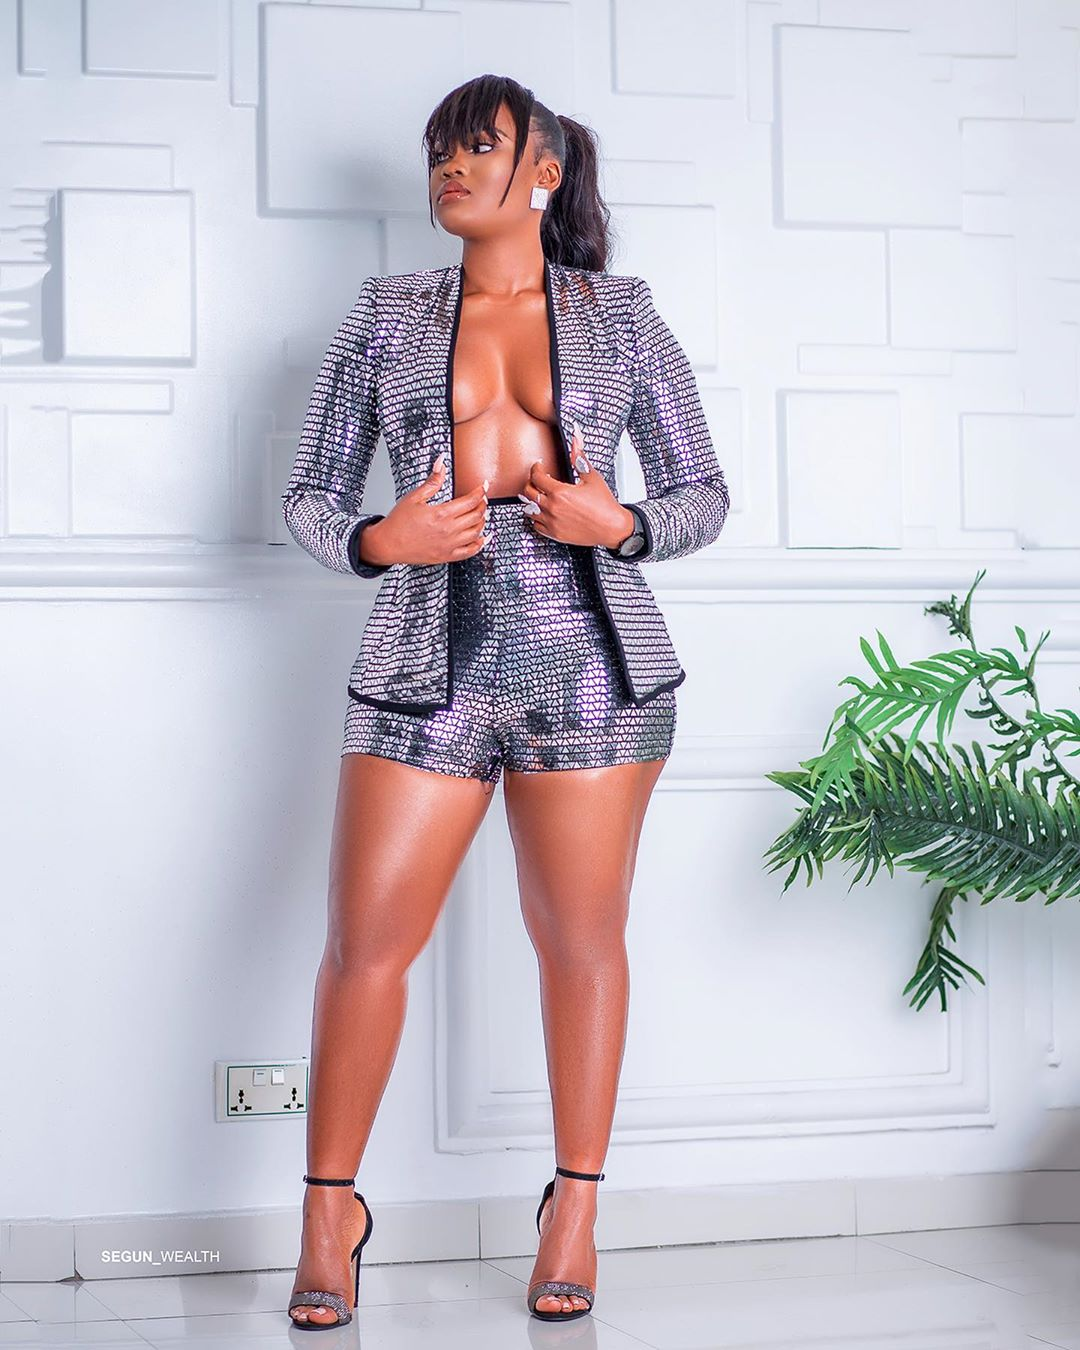 Cee-C Almost Reveals Everything In Cleavage Baring Jacket And Bum Shorts